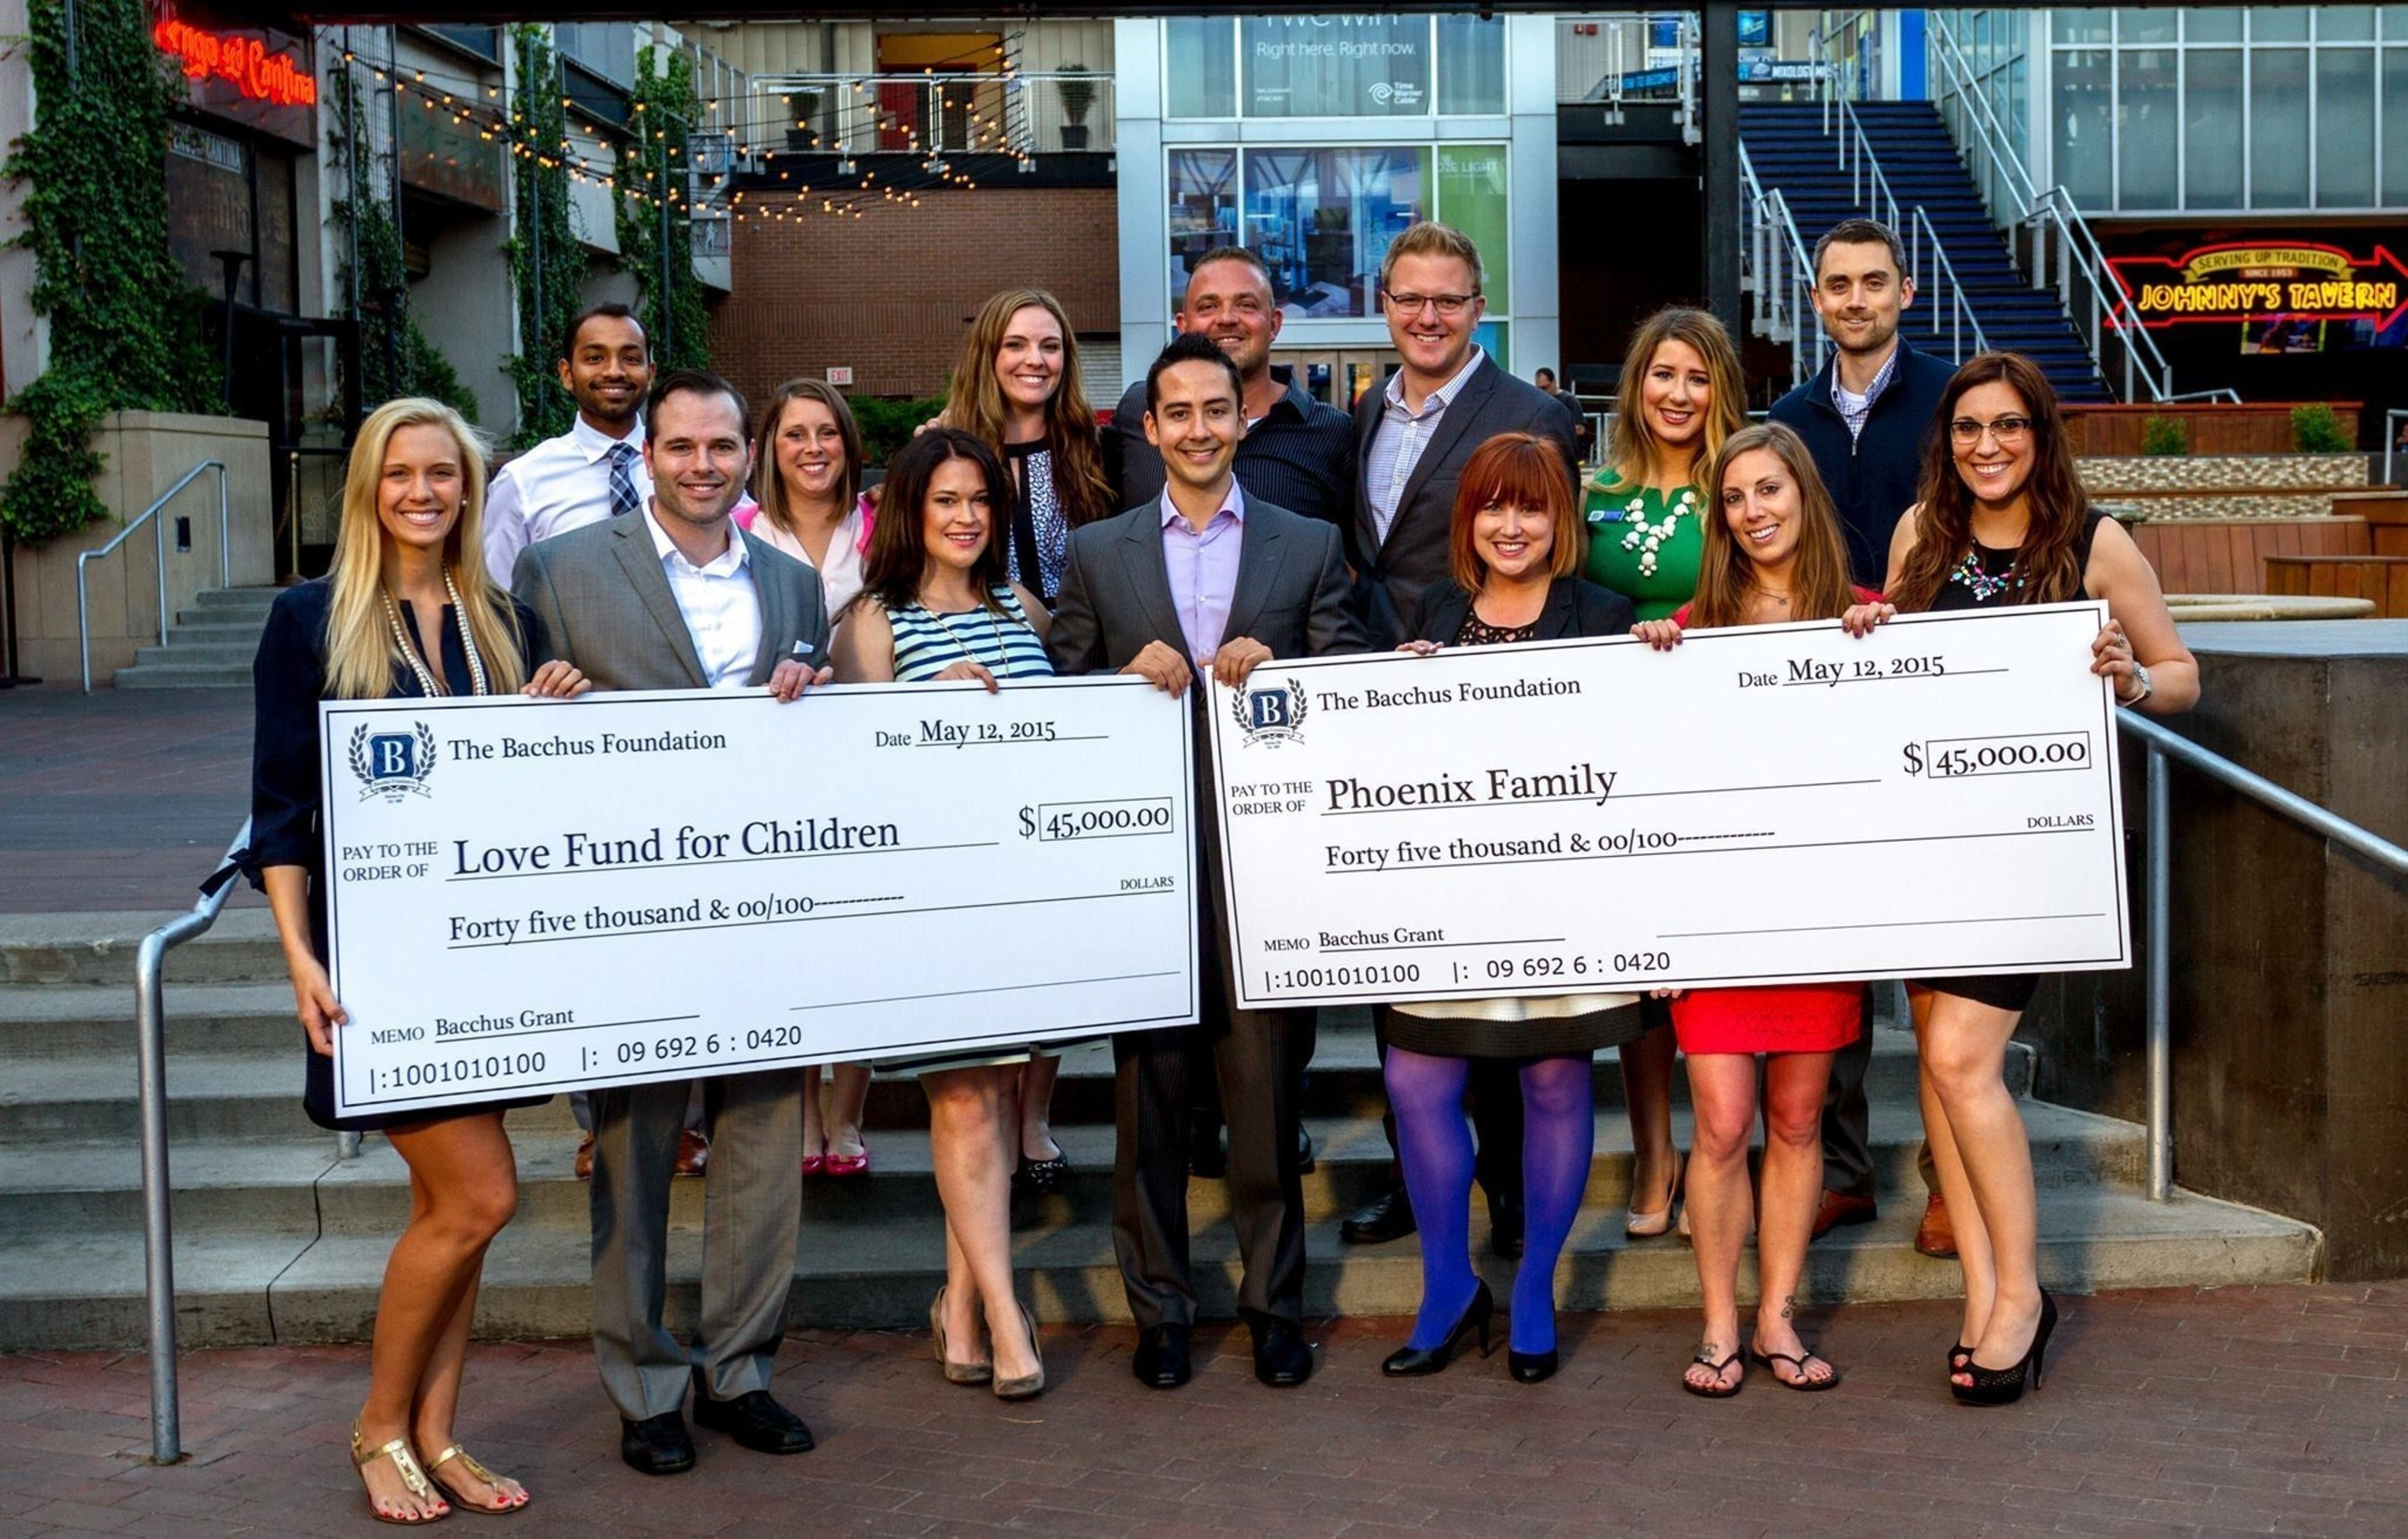 Bacchus Foundation Board of Directors presenting checks to their beneficiaries.